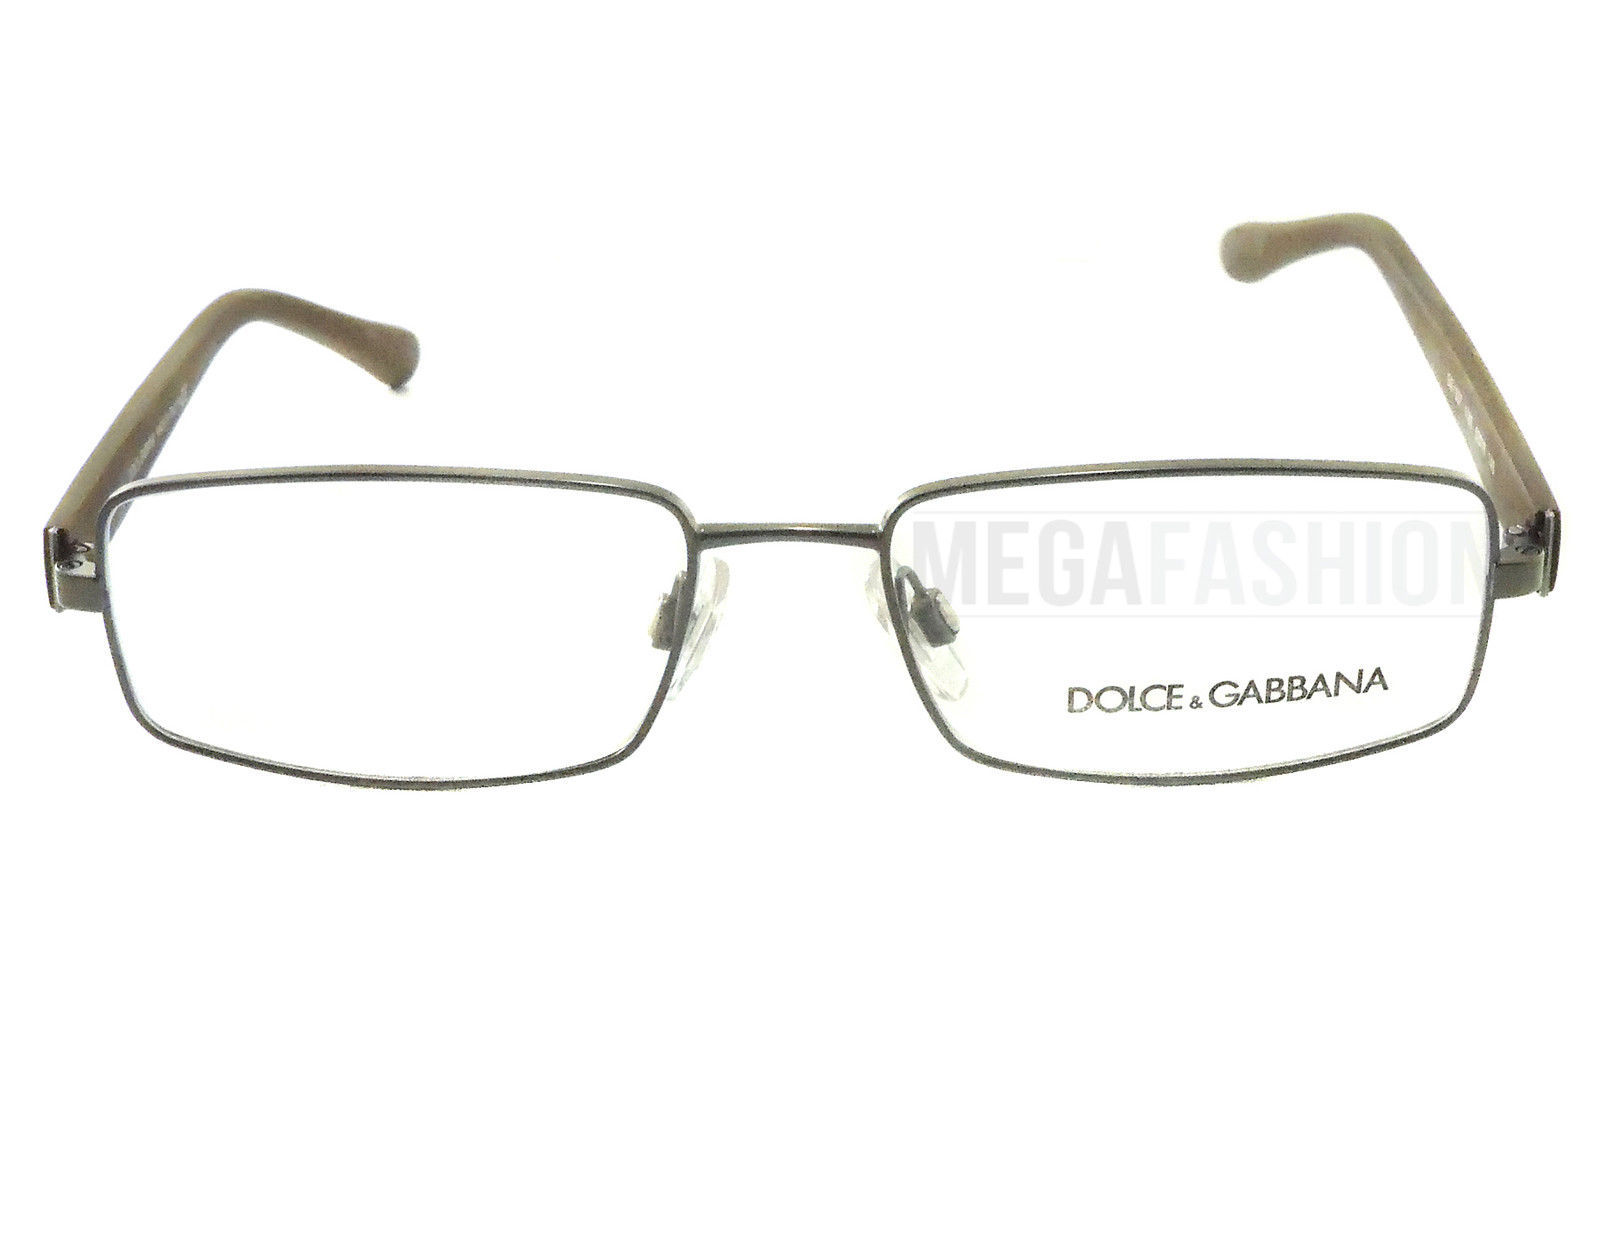 Cartier Eyeglasses: 5 listings